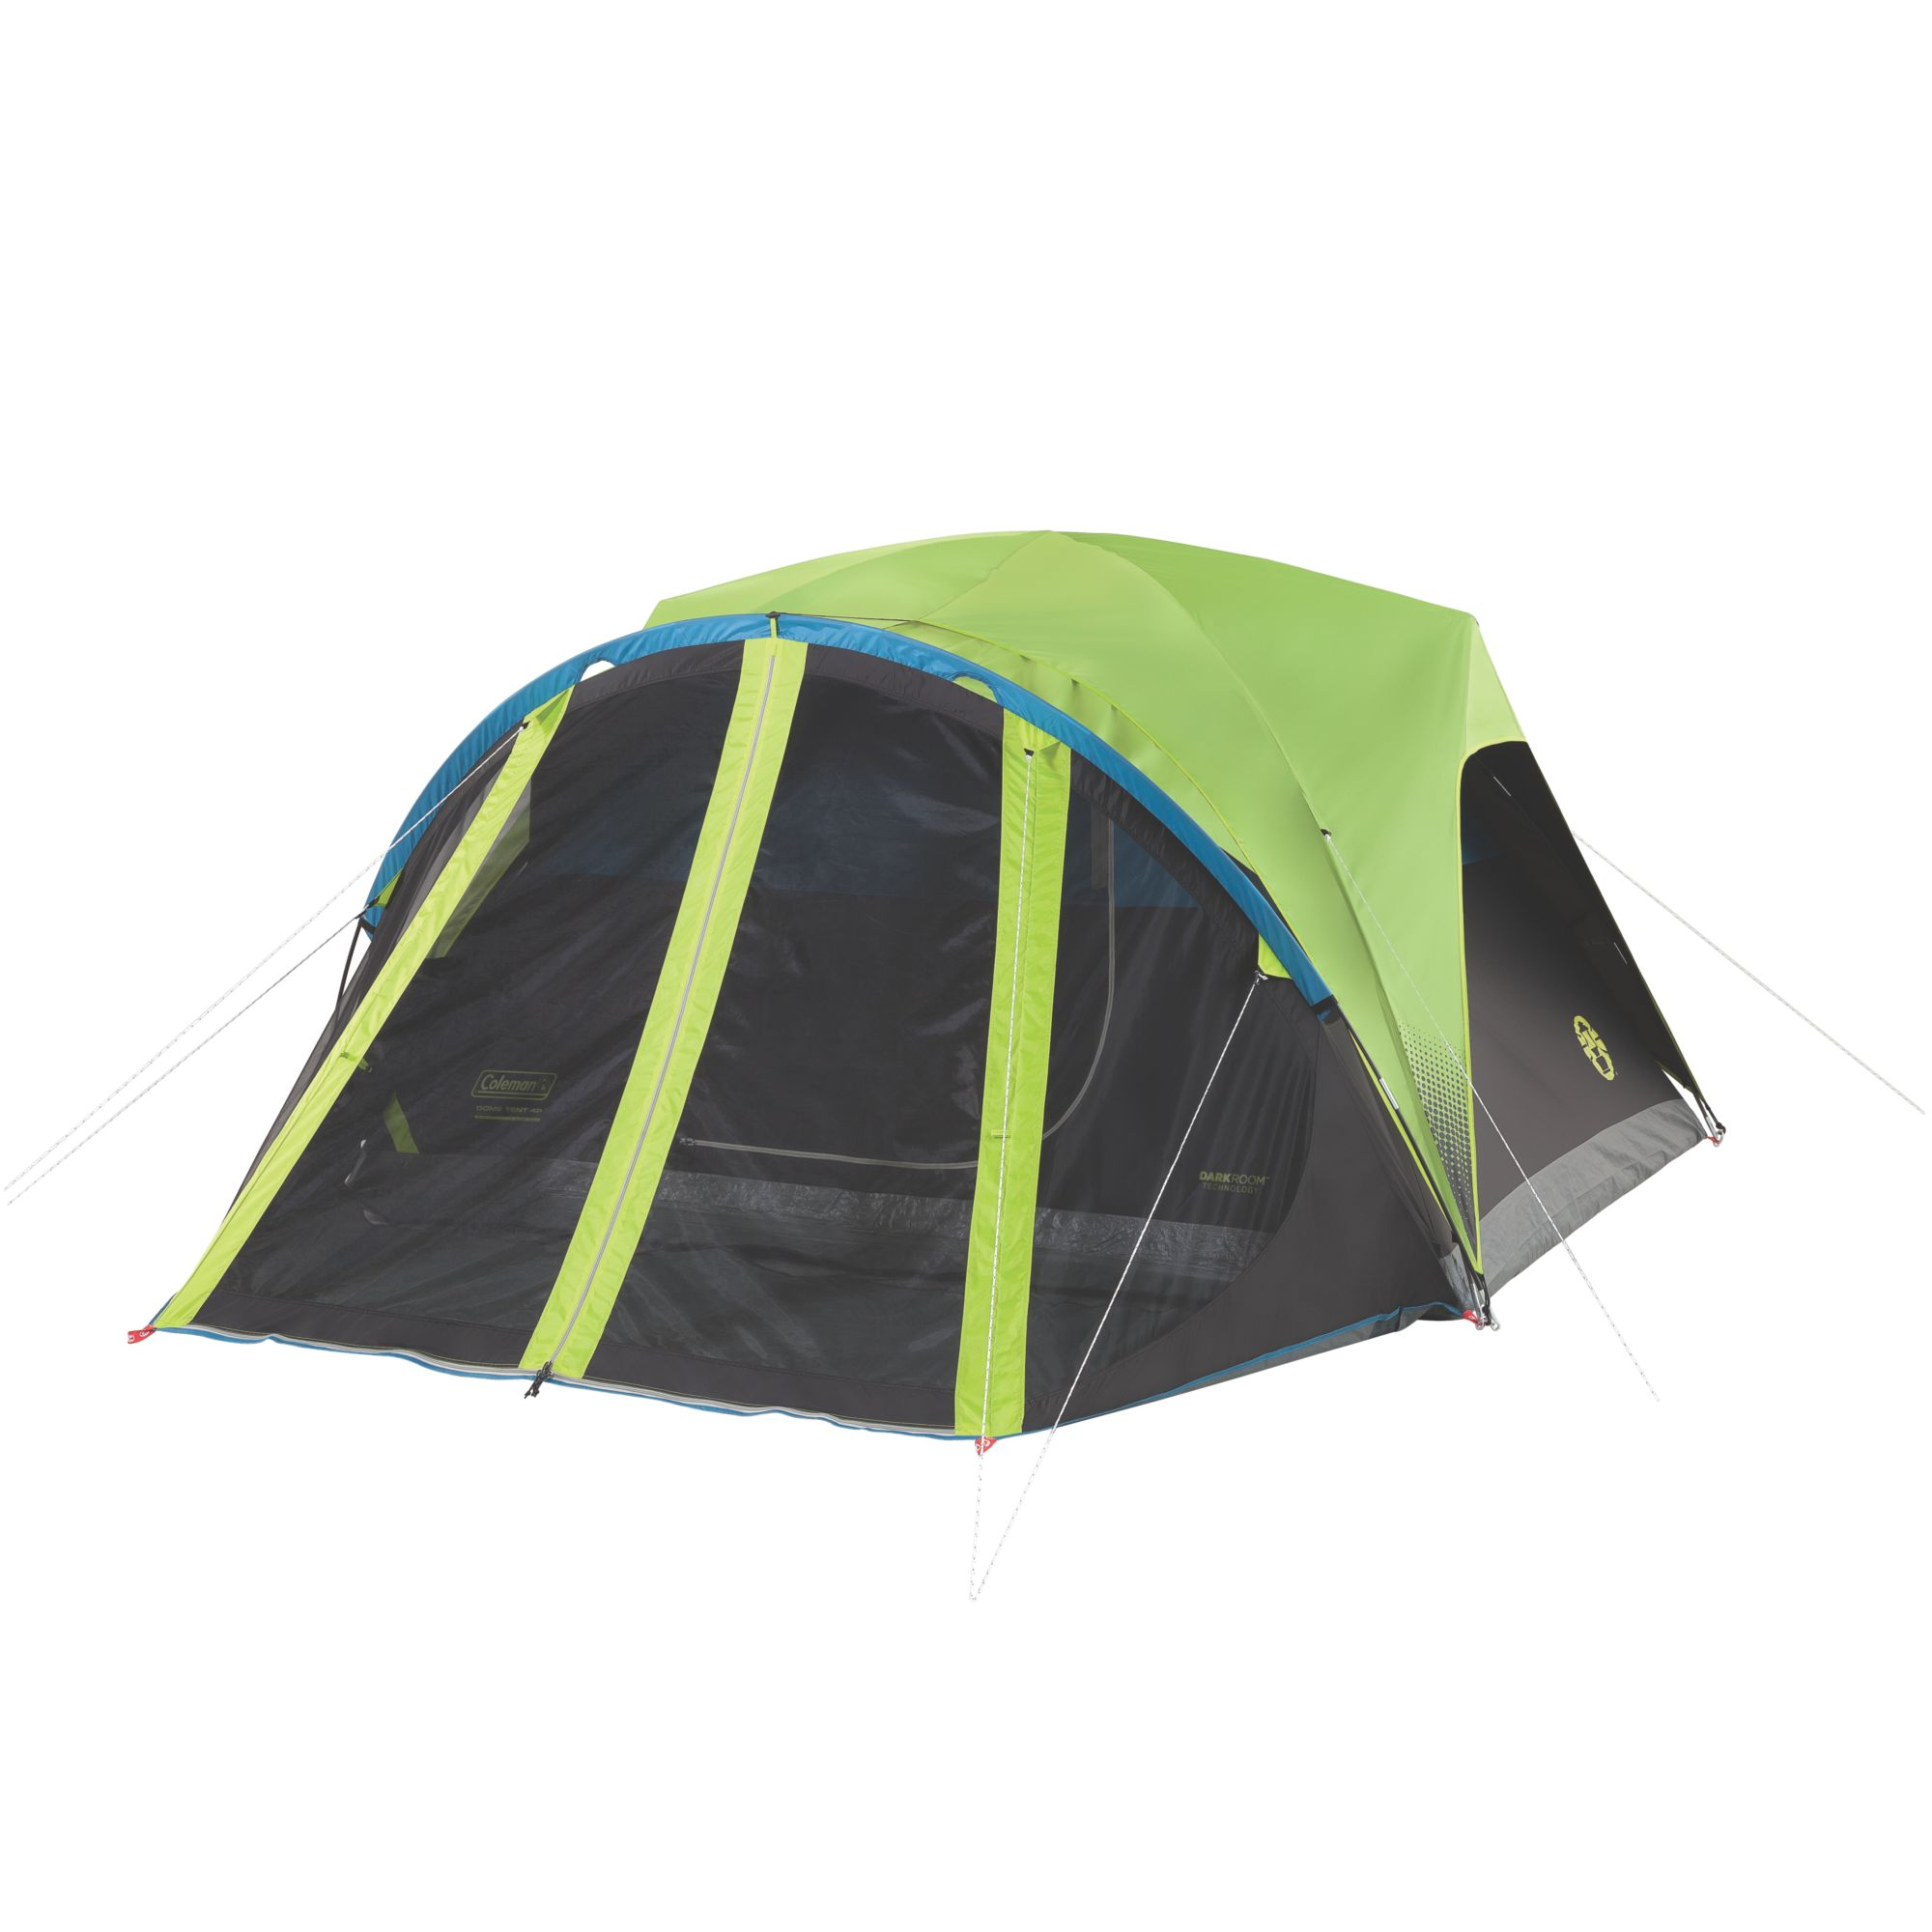 carlsbad 4 person dark room tent with screen room coleman